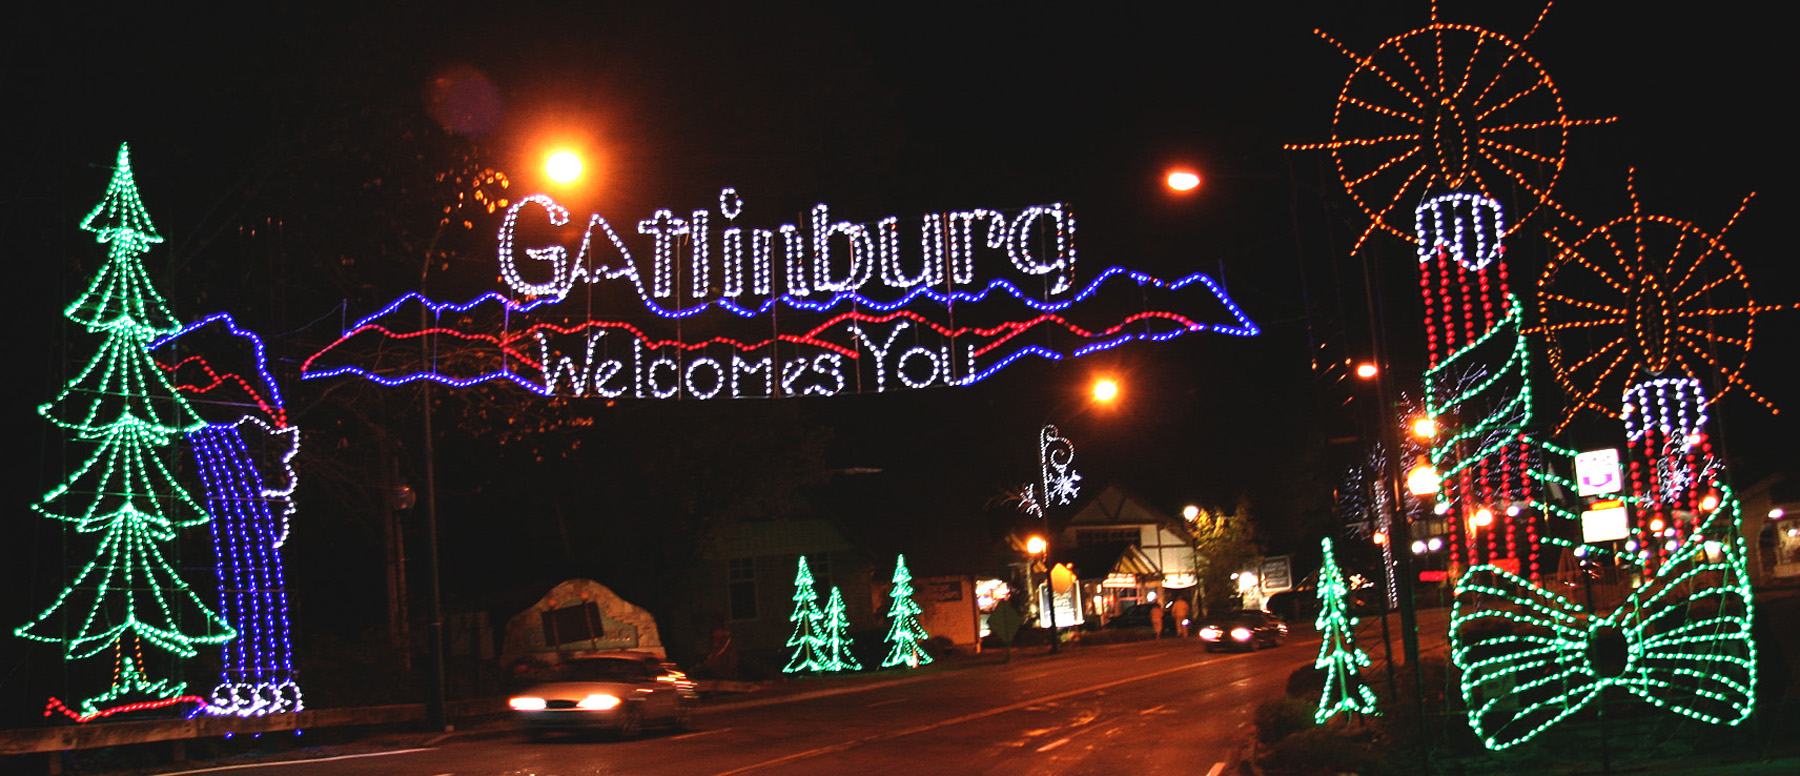 Gatlinburg Winterfest 1